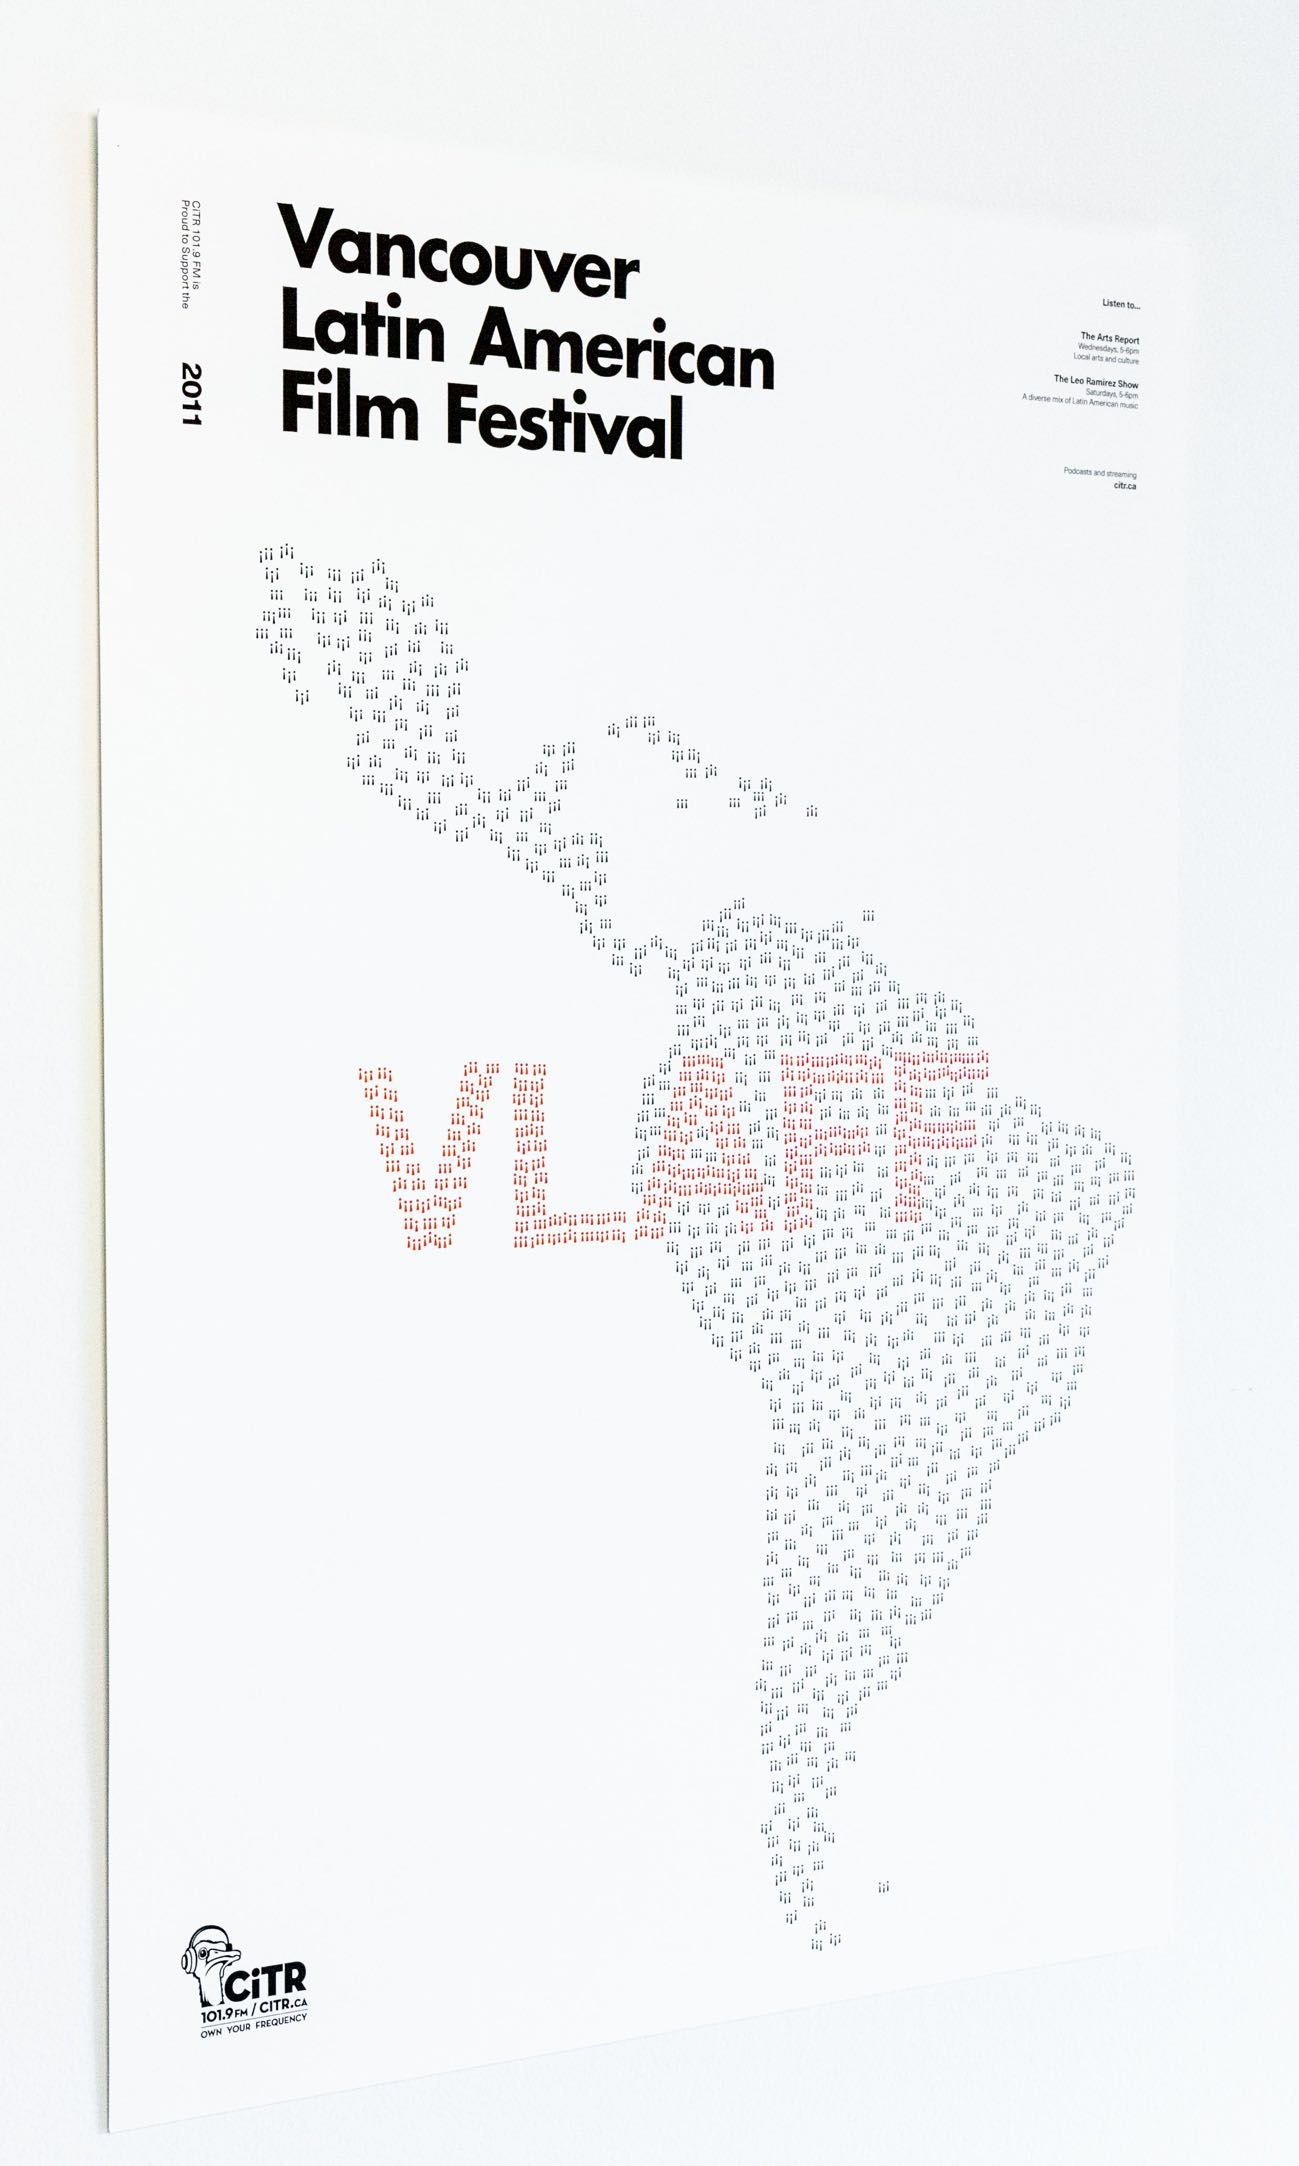 Vancouver Latin American Film Festival advertisement poster for CiTR radio showing a map of Latin America illustrated in exclamation marks — by Yagnyuk.